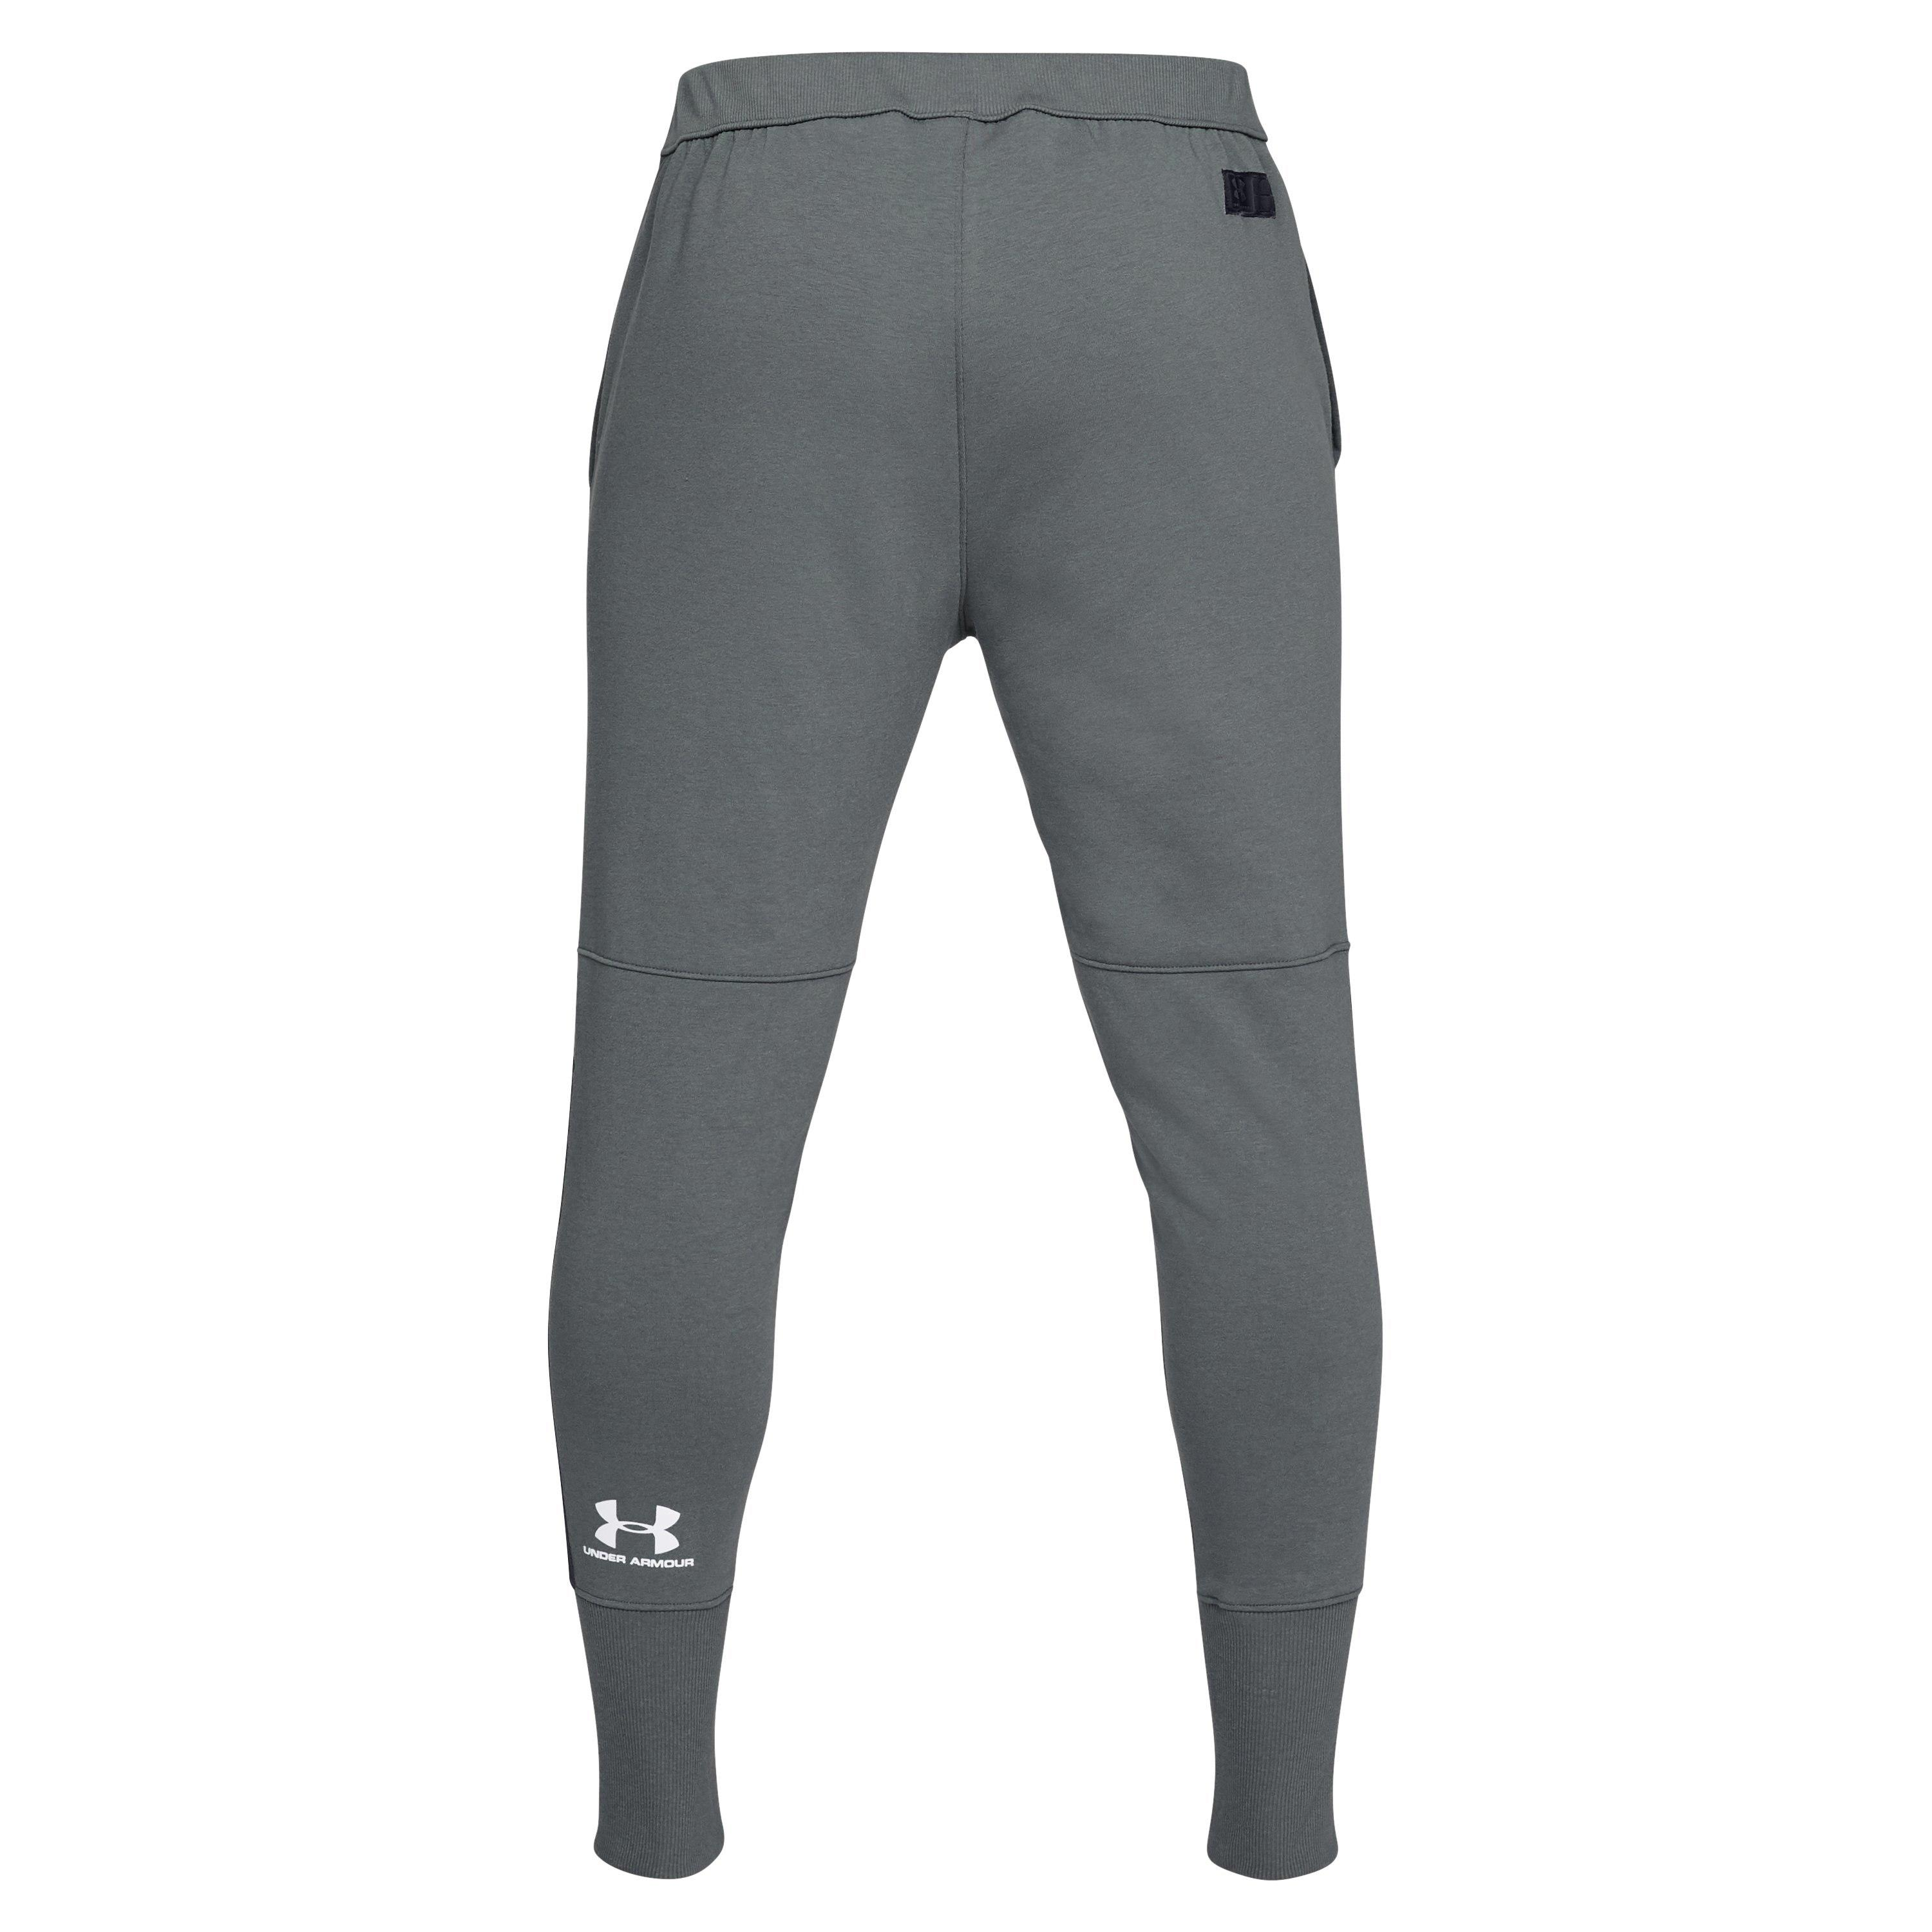 efd0fa4f3 Under Armour Men's Ua Accelerate Off-pitch Pants in Black for Men - Lyst